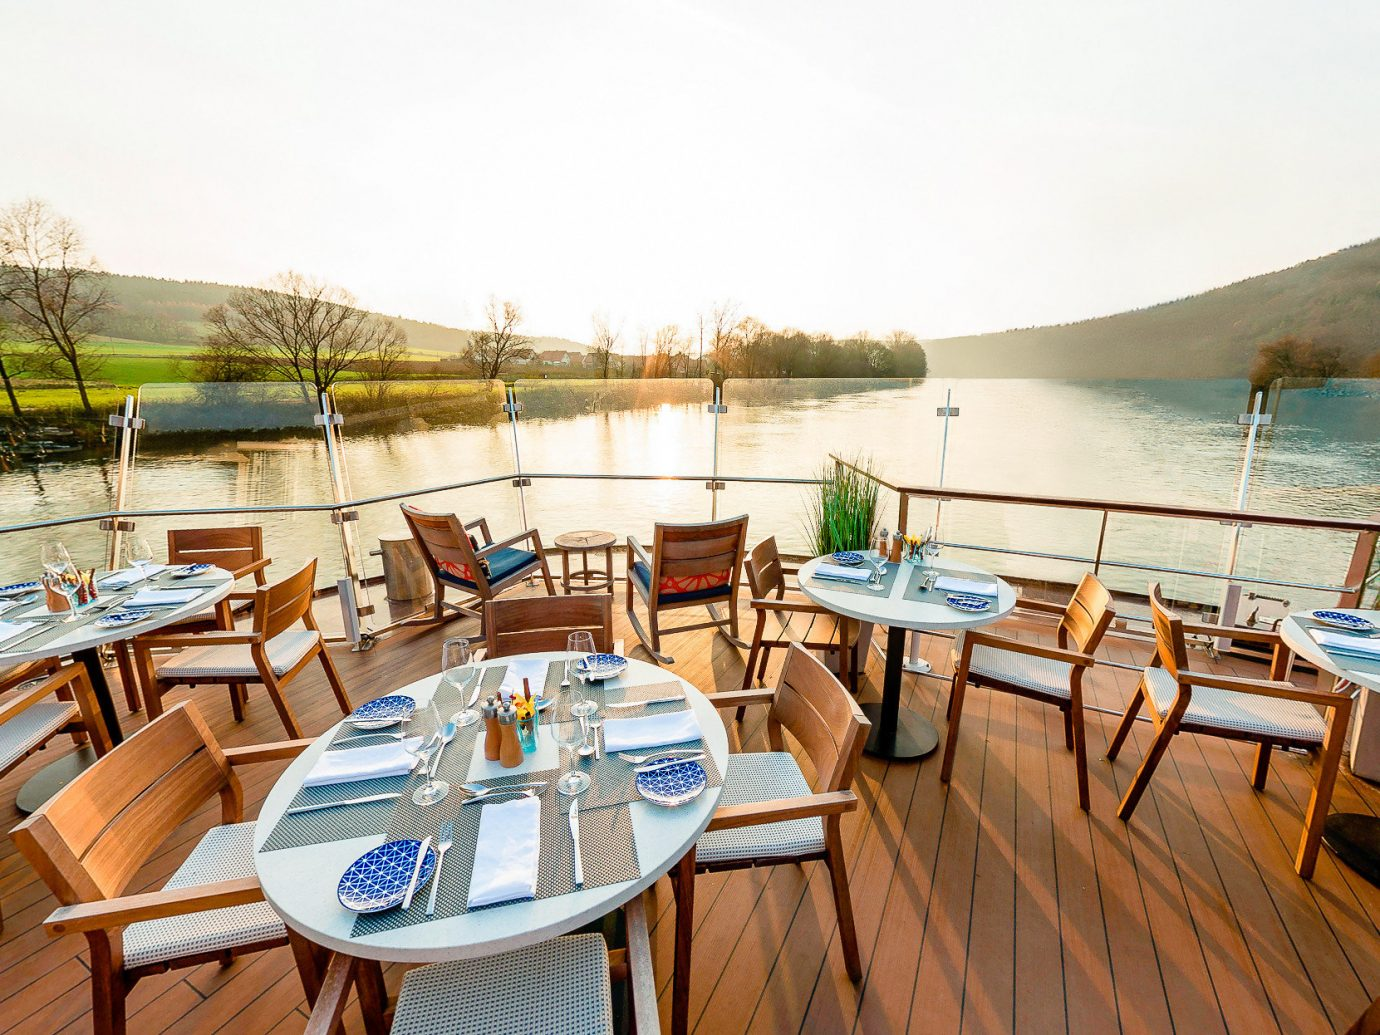 Cruise Travel Luxury Travel chair table sky water wooden Deck overlooking Boat real estate Resort dock leisure restaurant outdoor structure vacation yacht recreation furniture